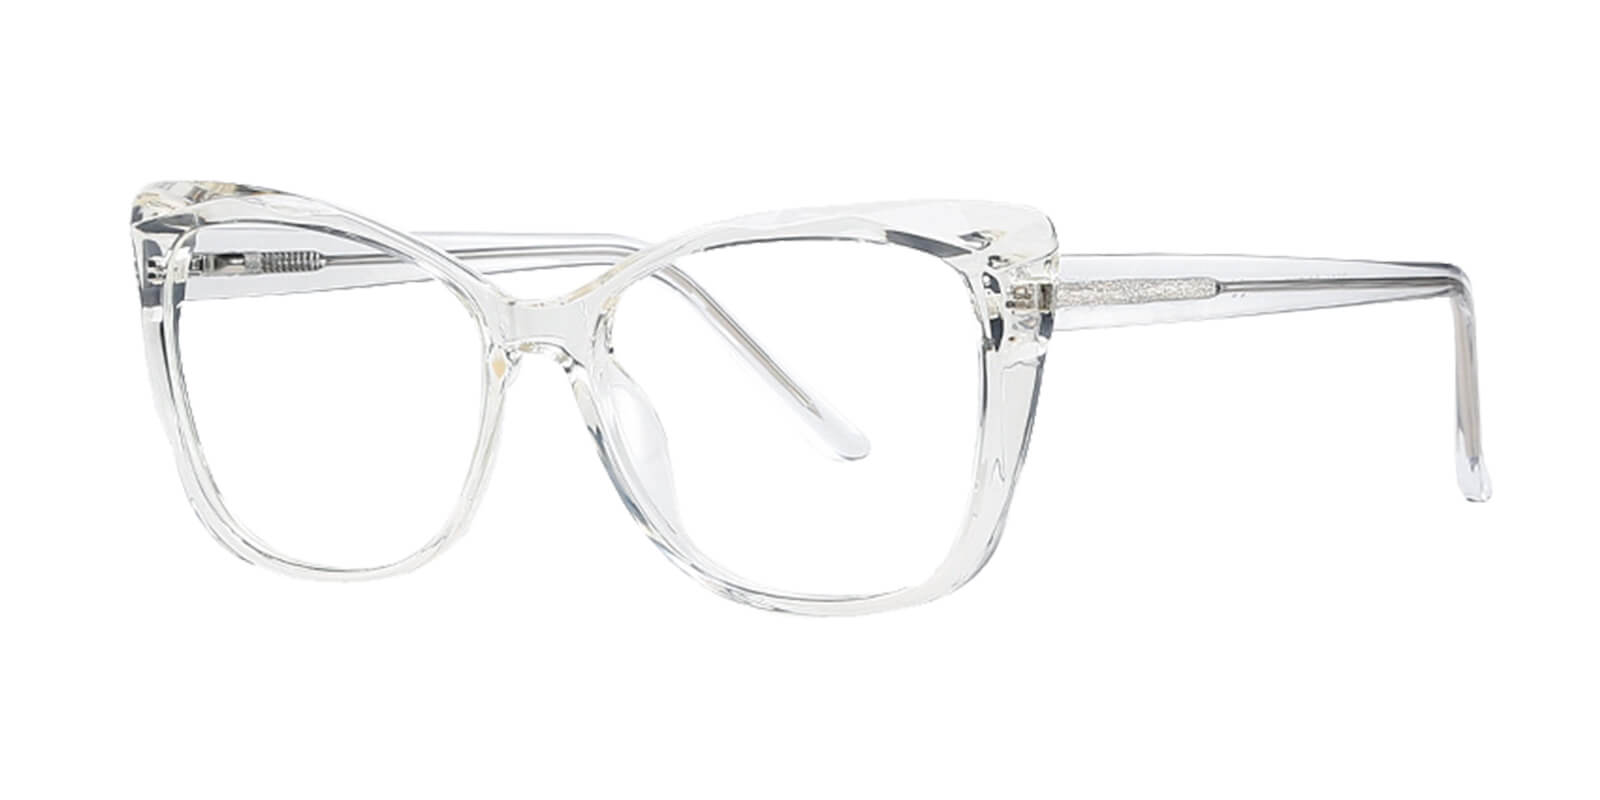 Persia-Hipster cat eye womens glasses four color options